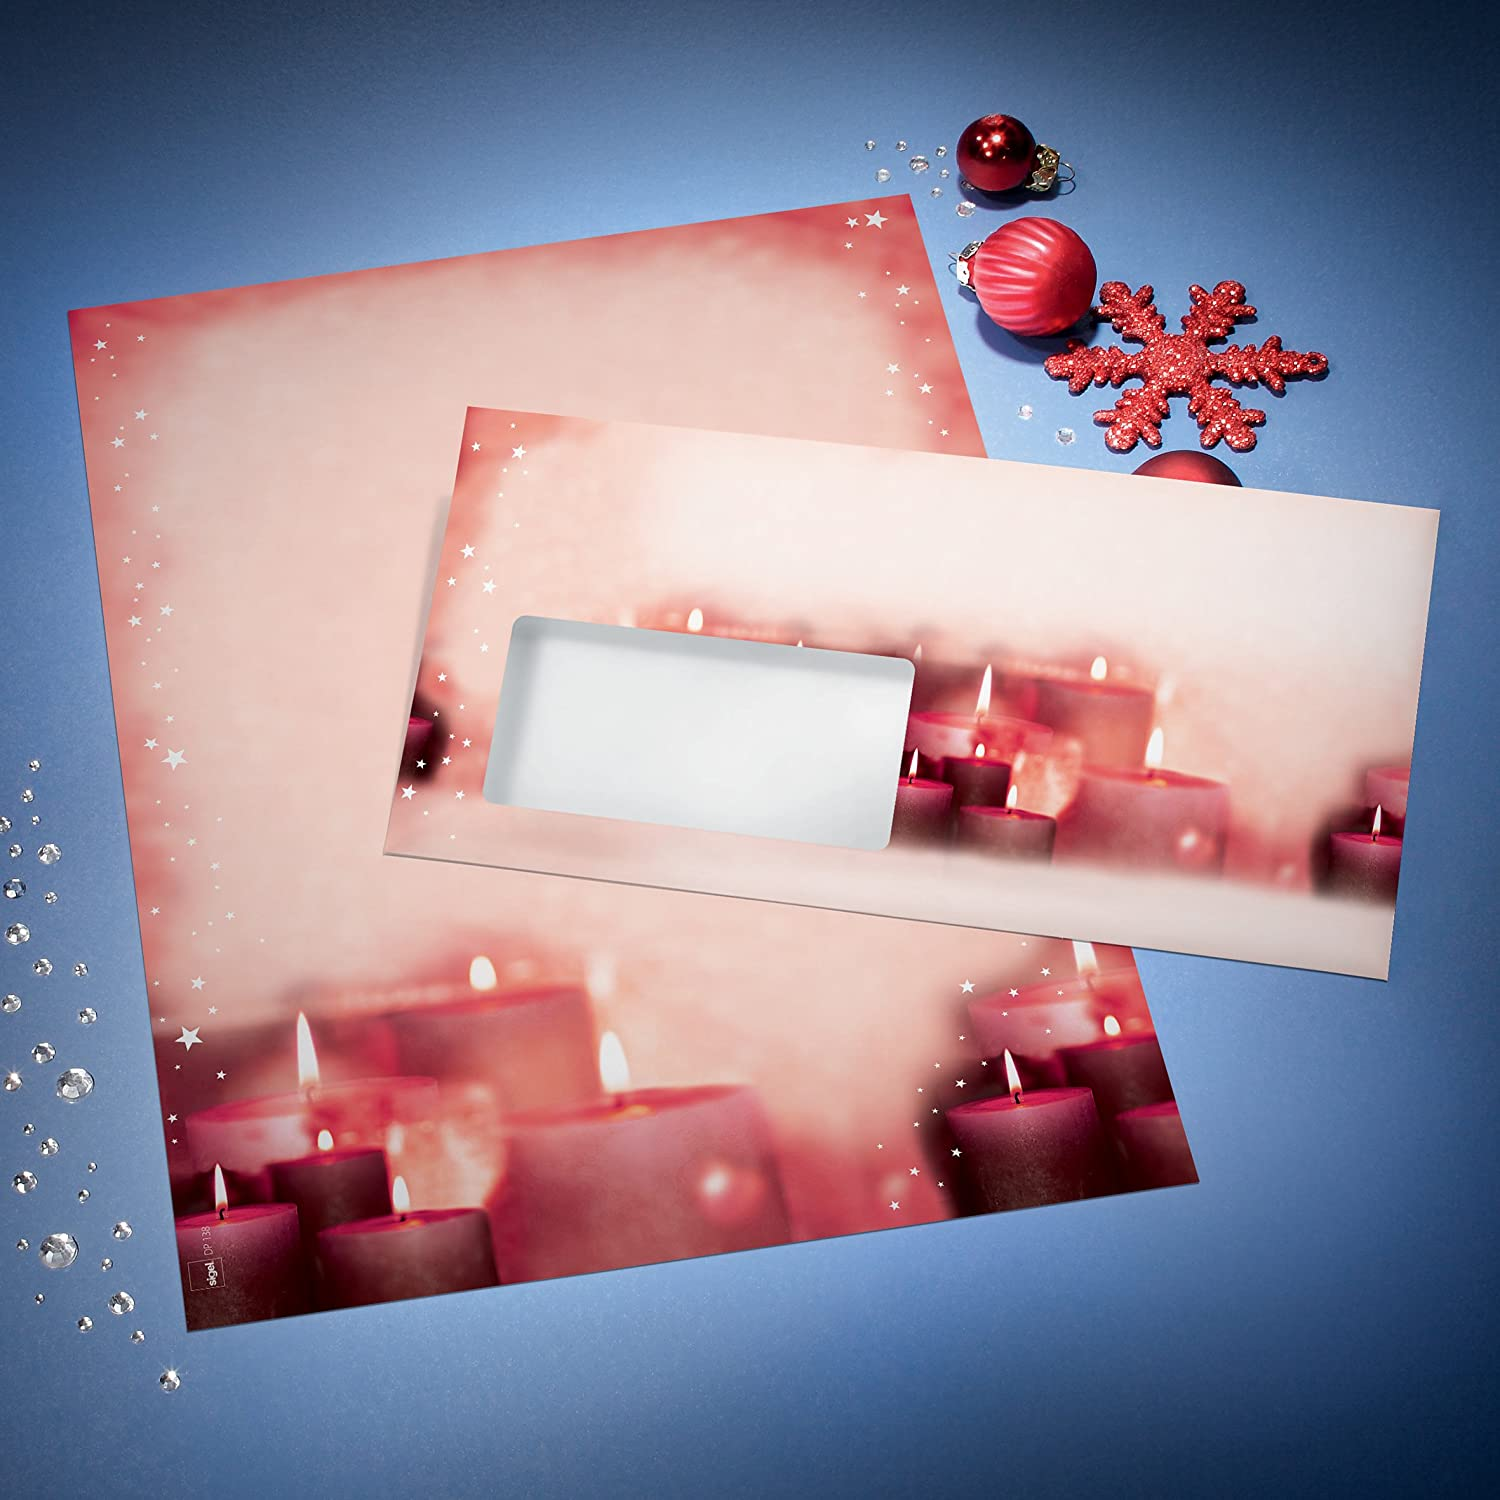 Red Sigel DP138 90 g Writing Paper with A Festive Candle Design